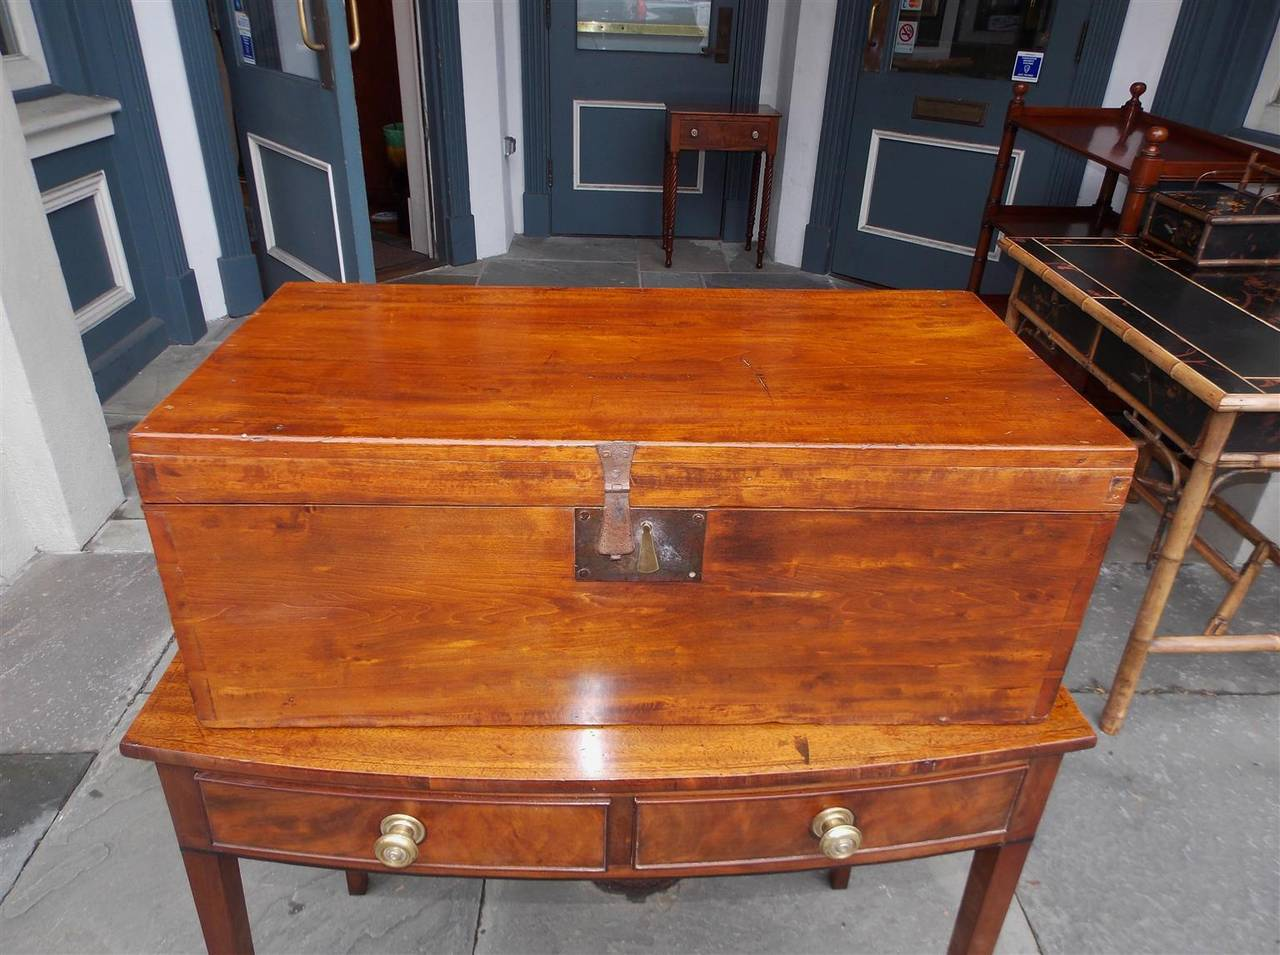 English lime wood military Campaign chest with exposed dove tails, original side handles and locking mount, Early 19th century.